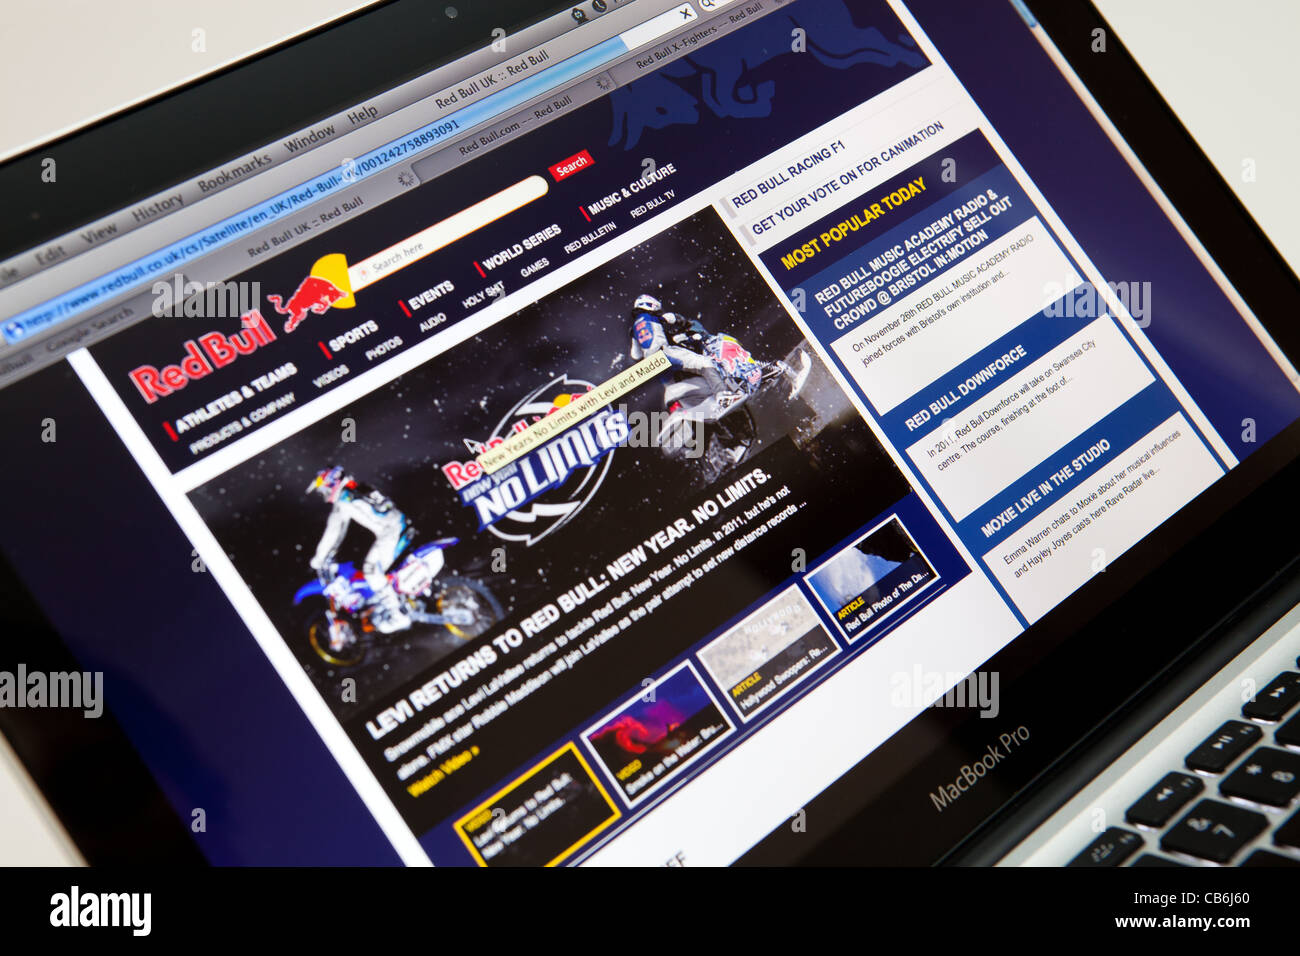 REDBULL Website Screen shot of web page - Stock Image